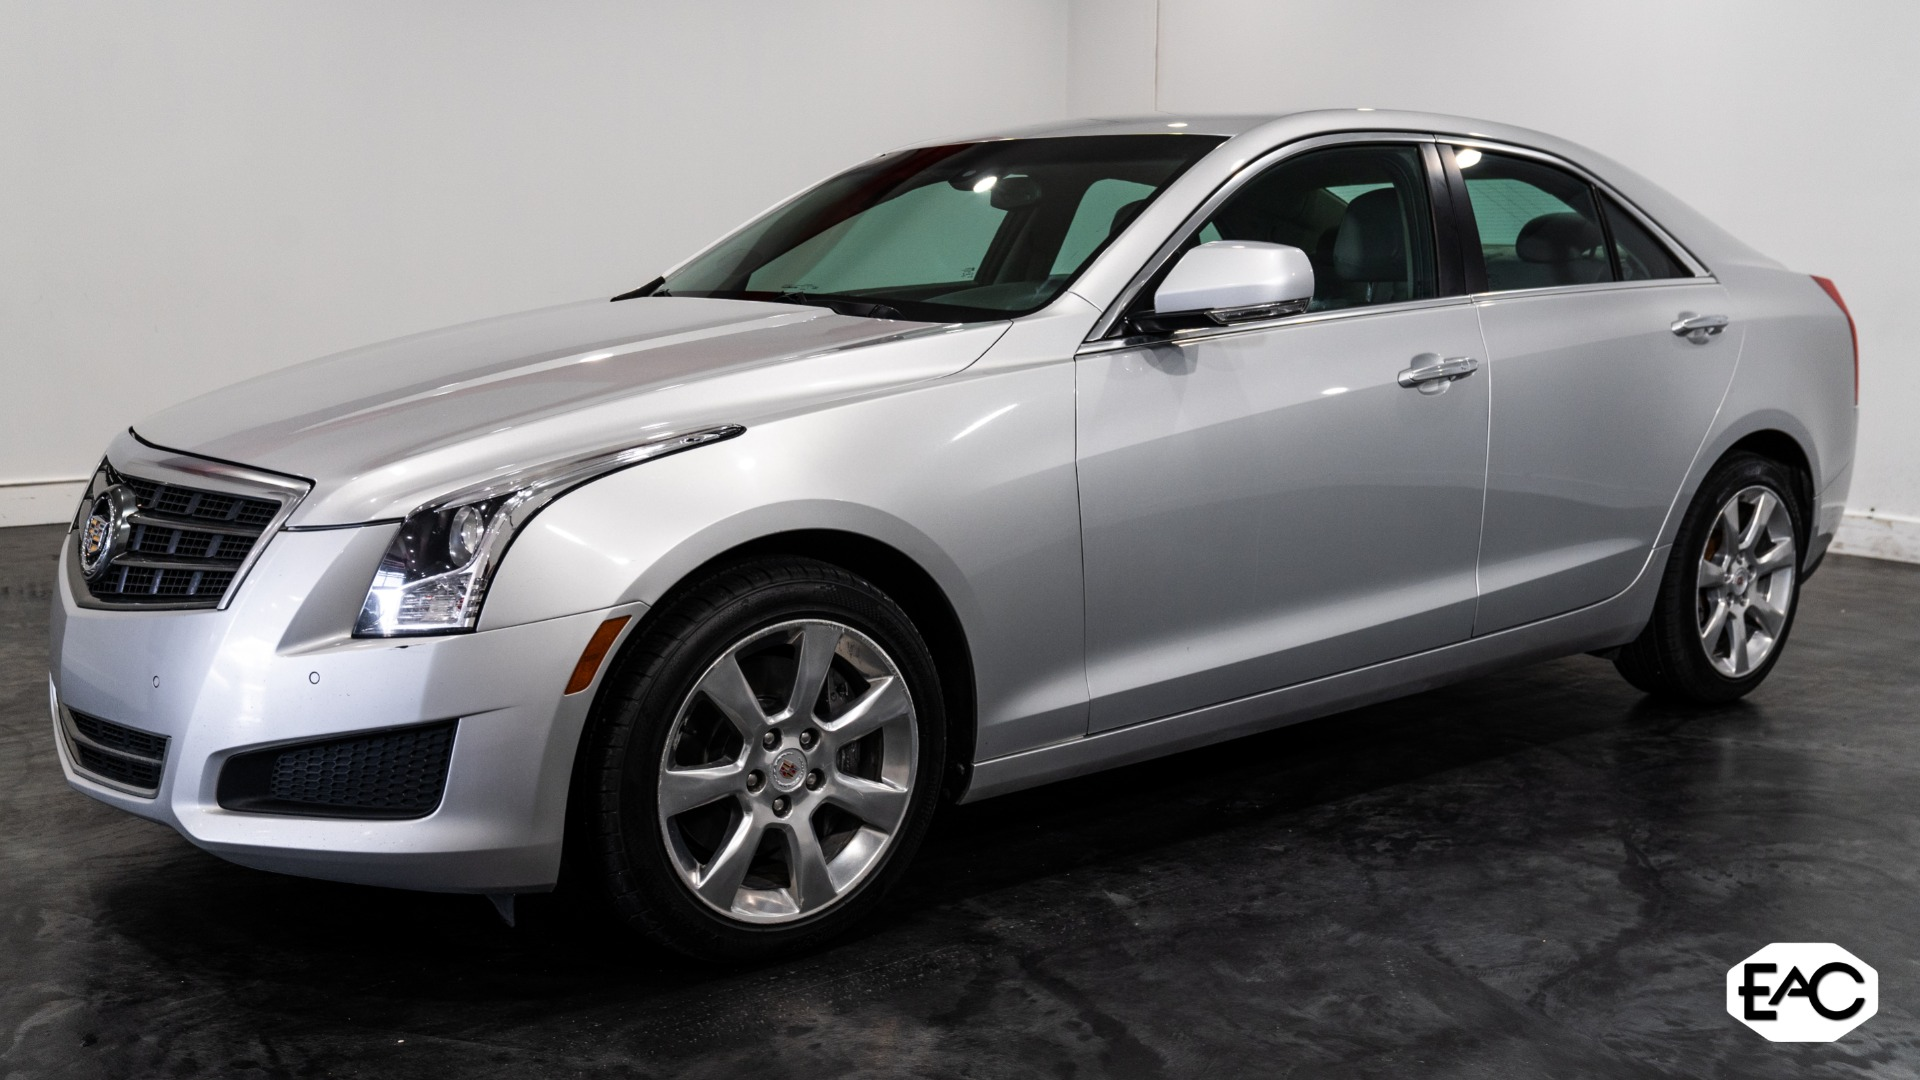 Used 2013 Cadillac ATS 2.0T Luxury for sale Sold at Empire Auto Collection in Warren MI 48091 1